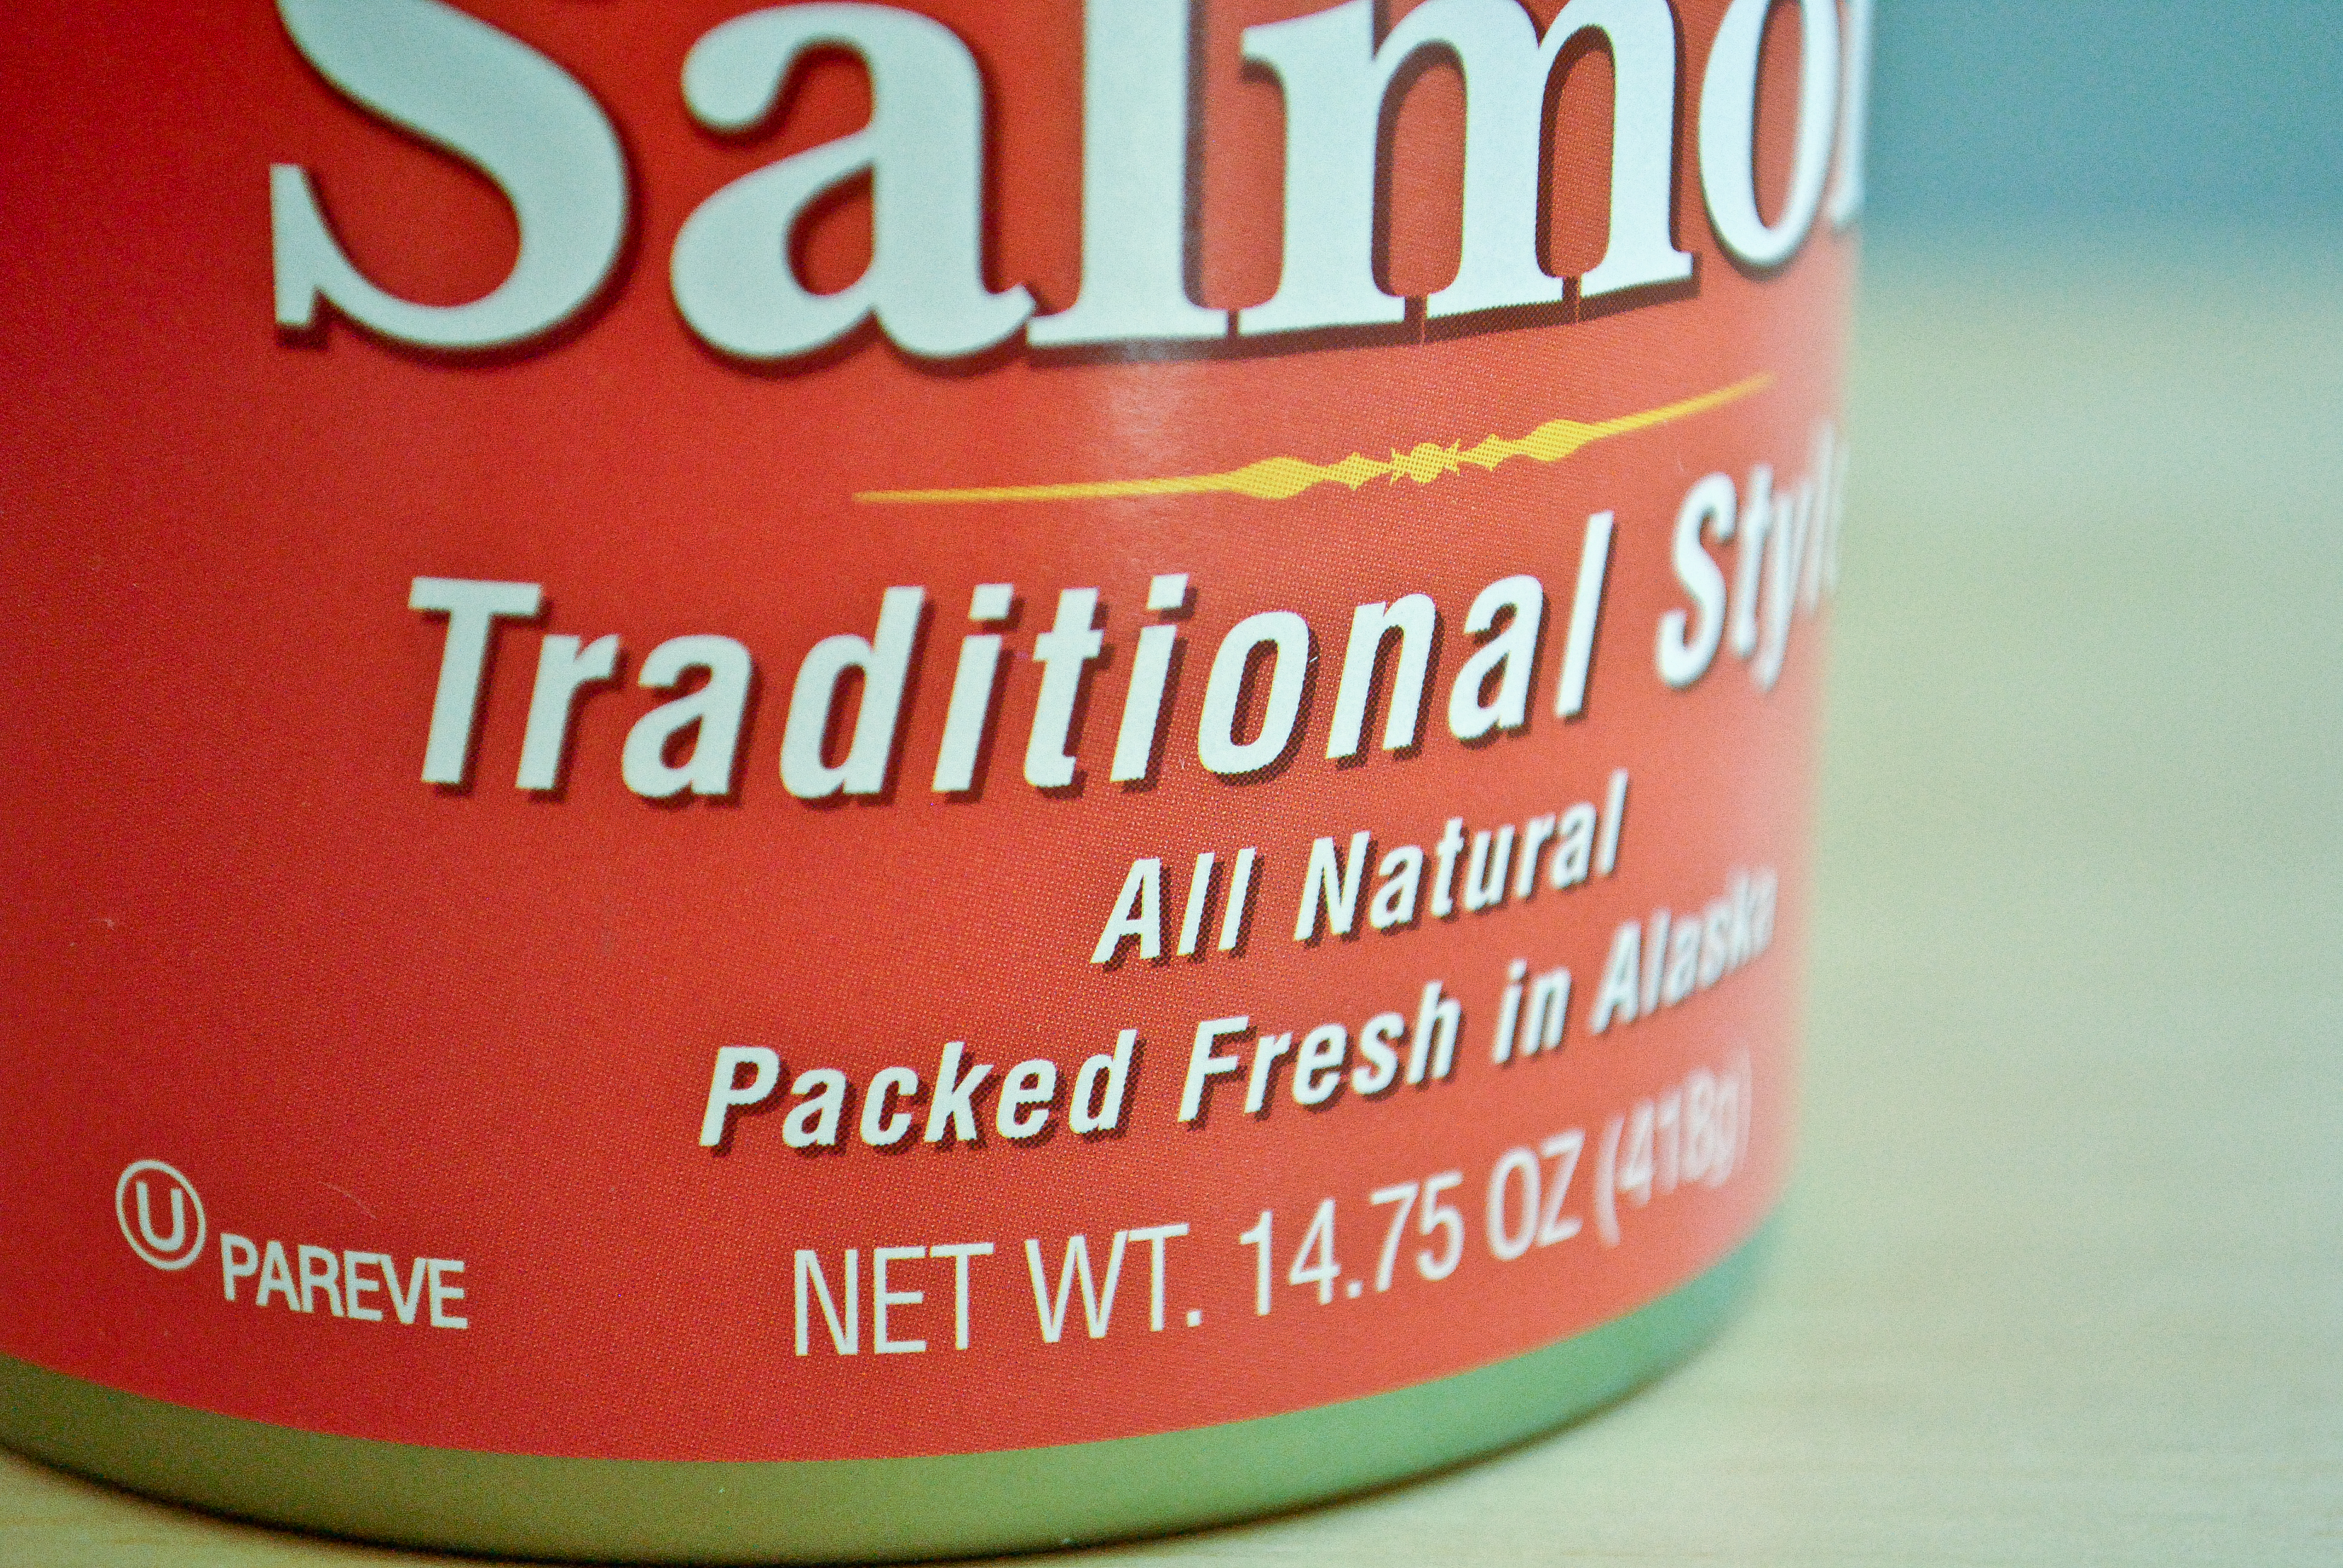 Canned Alaska salmon. (Creative Commons photo courtesy of cookbookoman17)